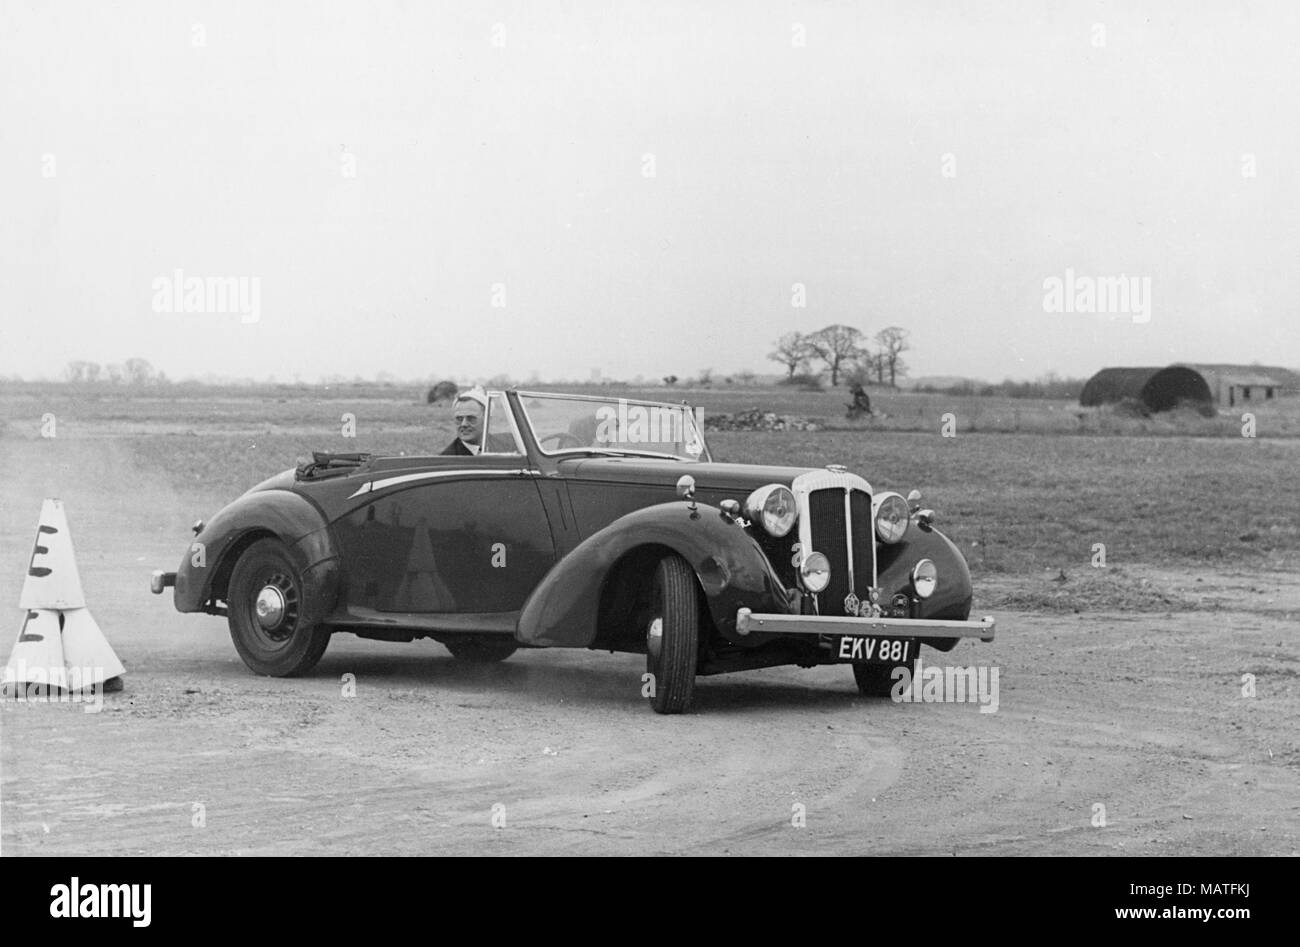 1939 Daimler DB18 Drophead Coupe 2.5 litros prototipo. Southend Rally, Thames Estuary Automobile Club 23 de marzo de 1956 Imagen De Stock